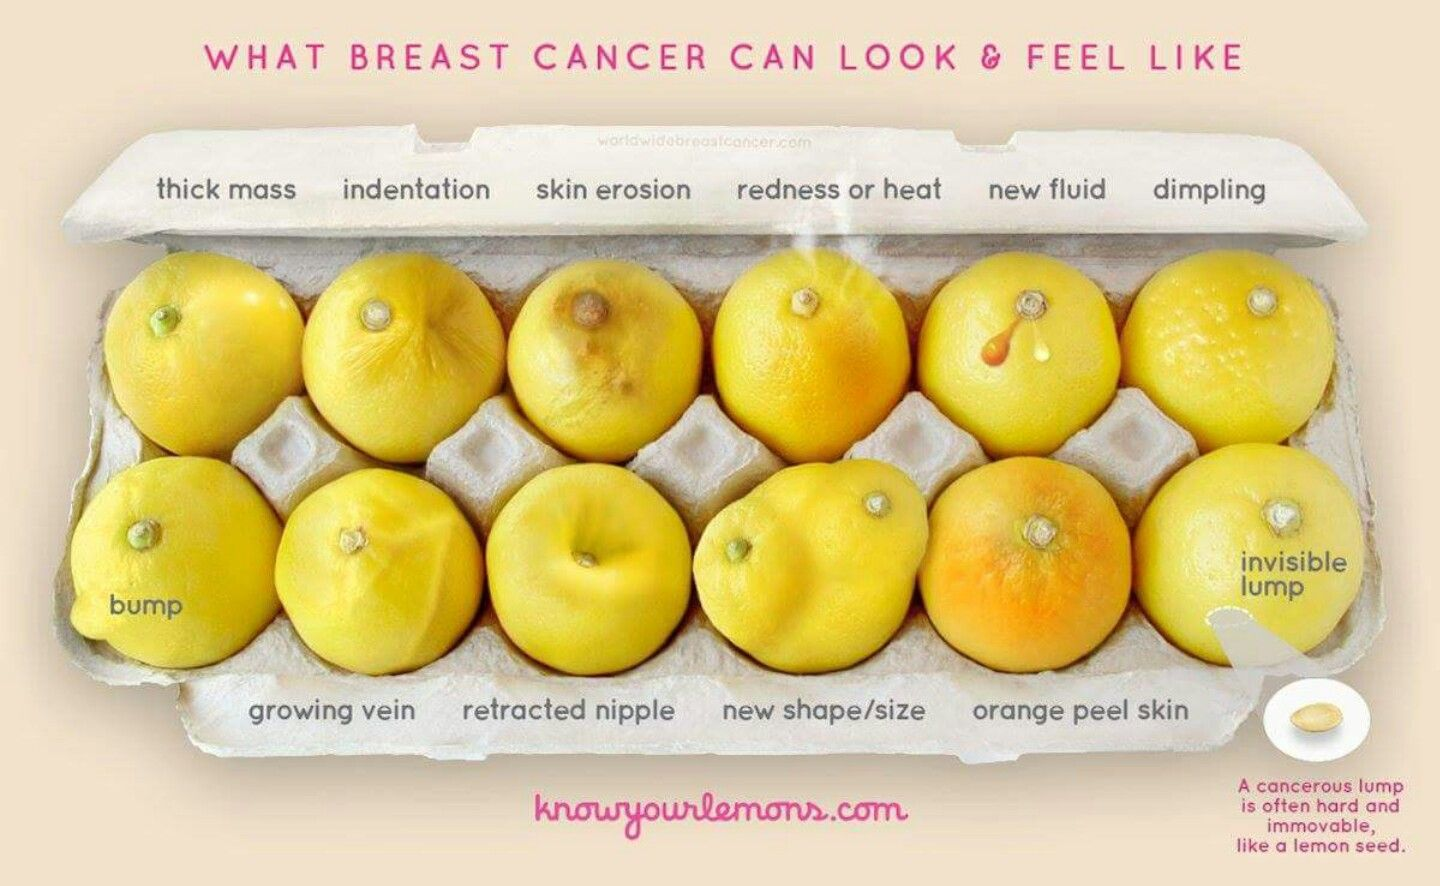 How breast cancer looks and feels...